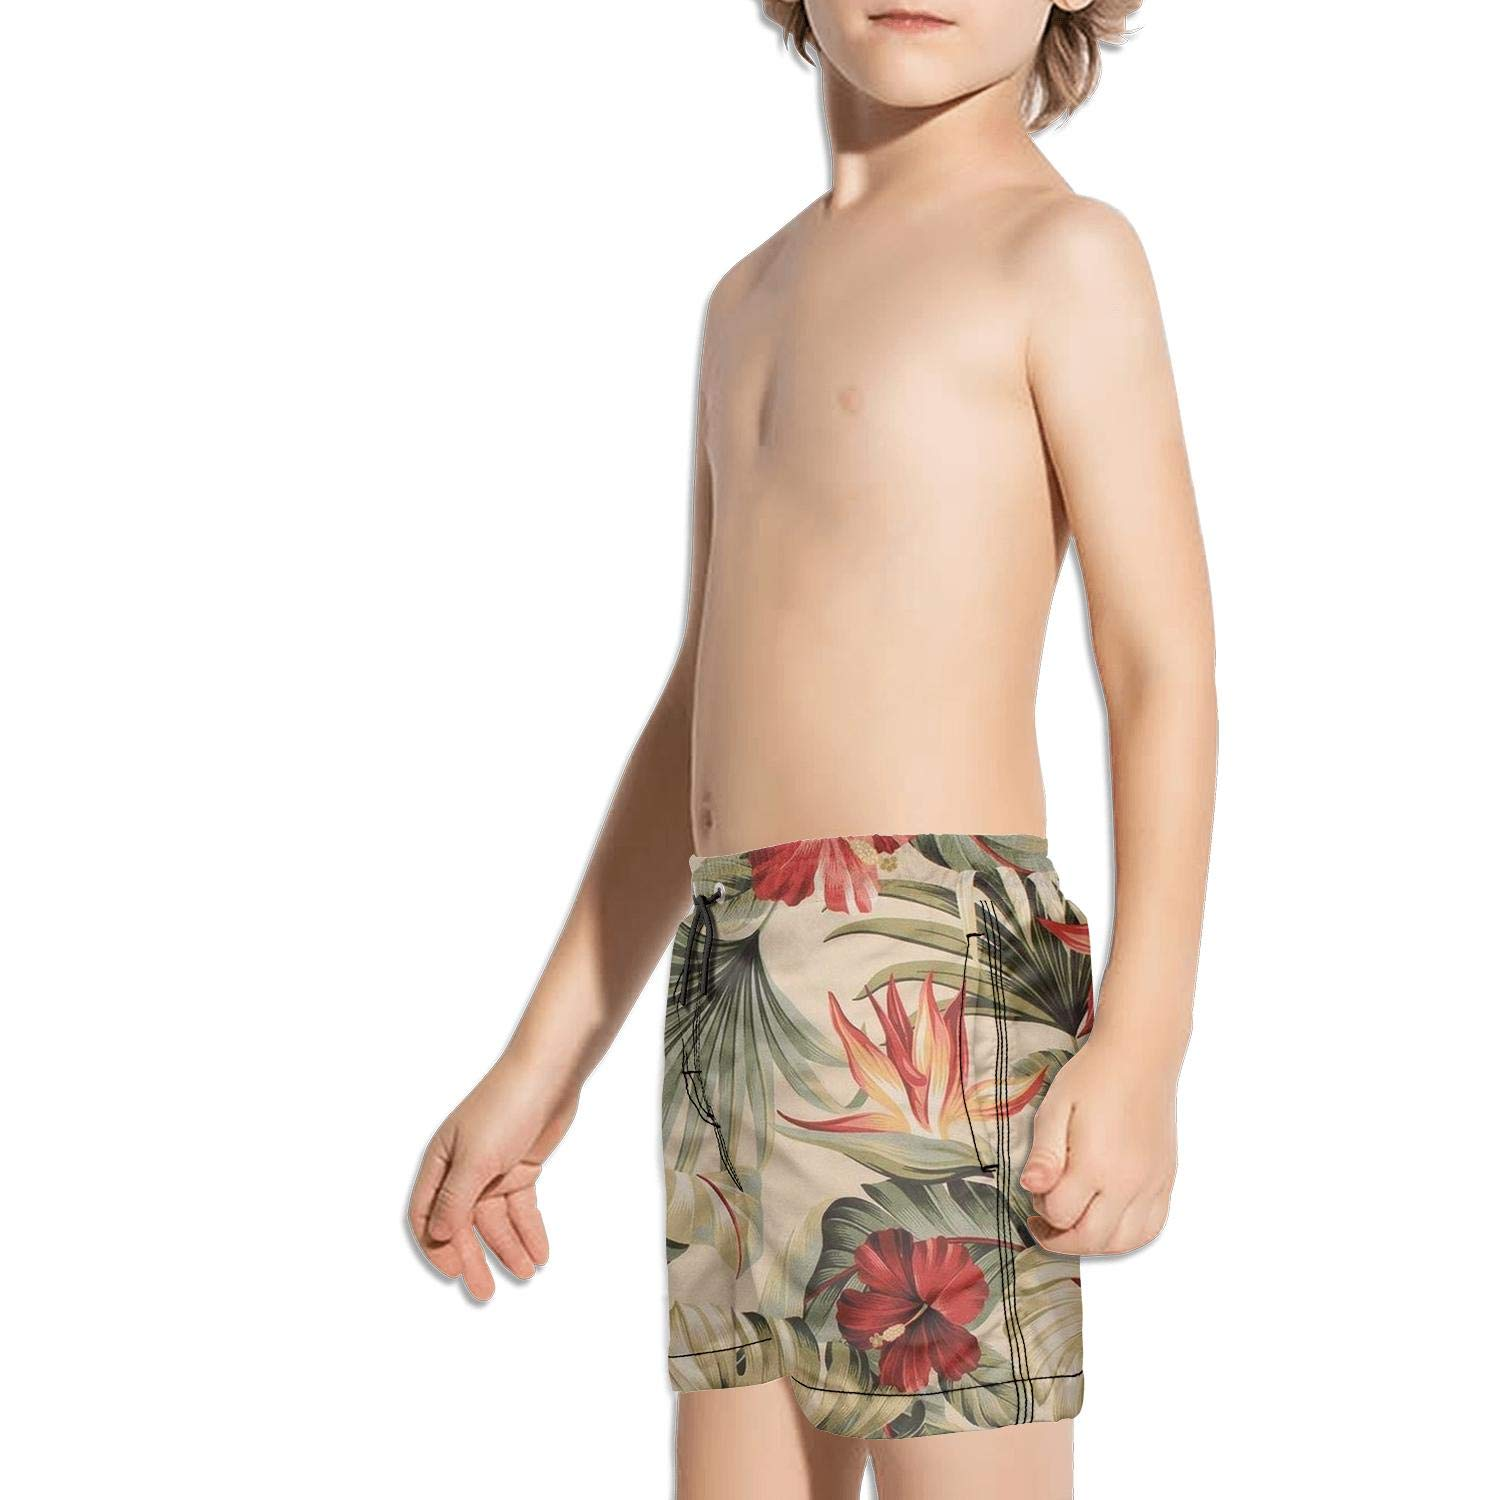 Etstk Hawaiian with Tropical Plants Flowers Kids Comfortable Beach Shorts for Schoolboys